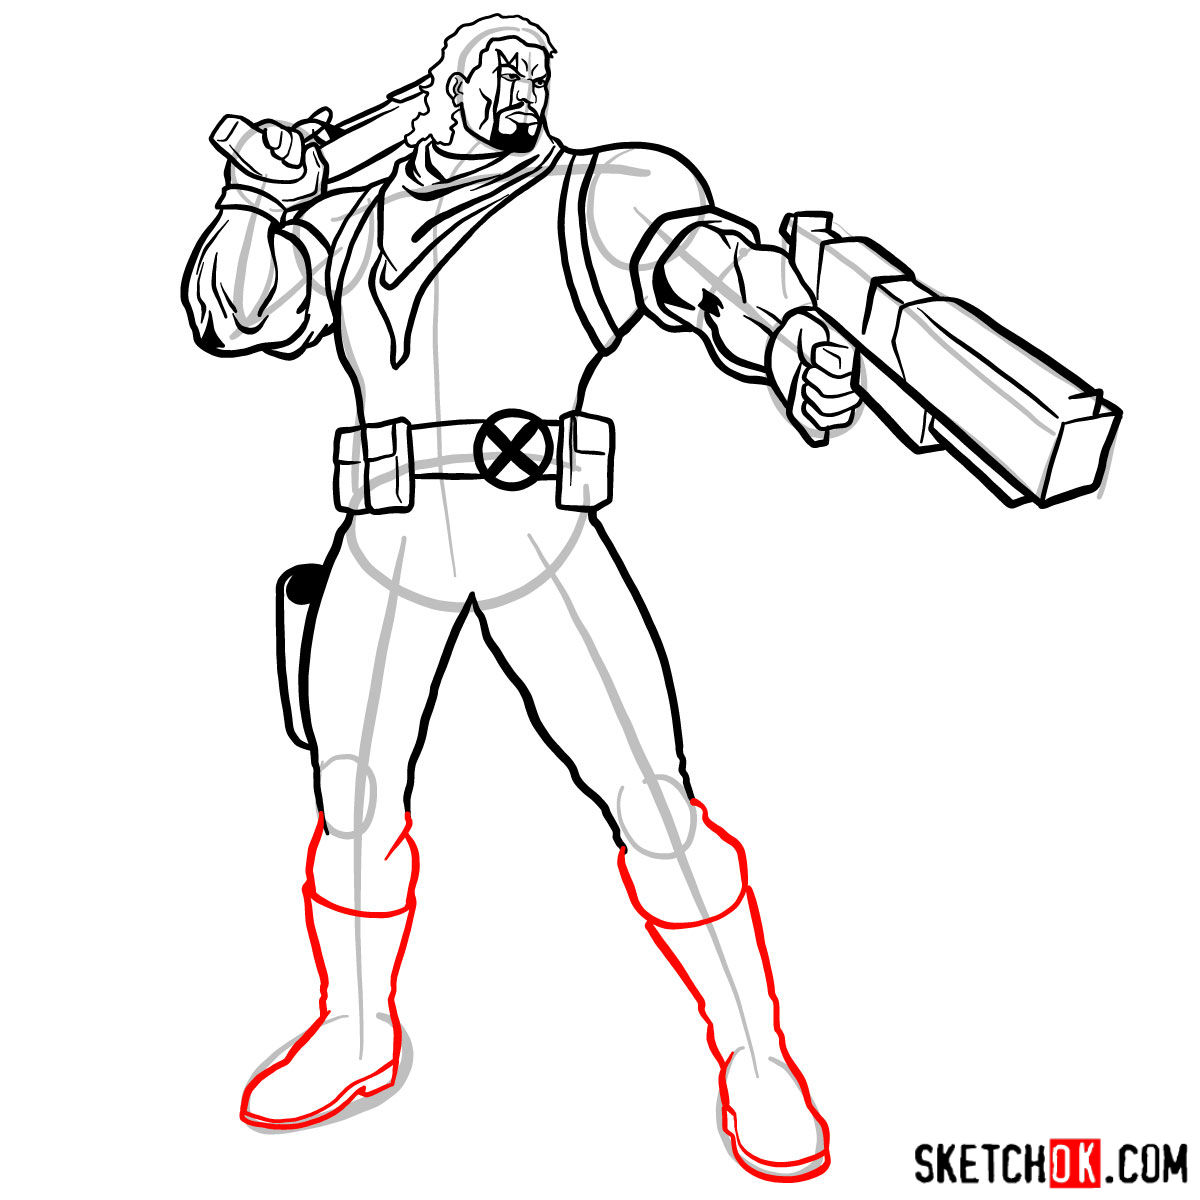 How to draw Lucas Bishop, a mutant from X-Men series - step 13